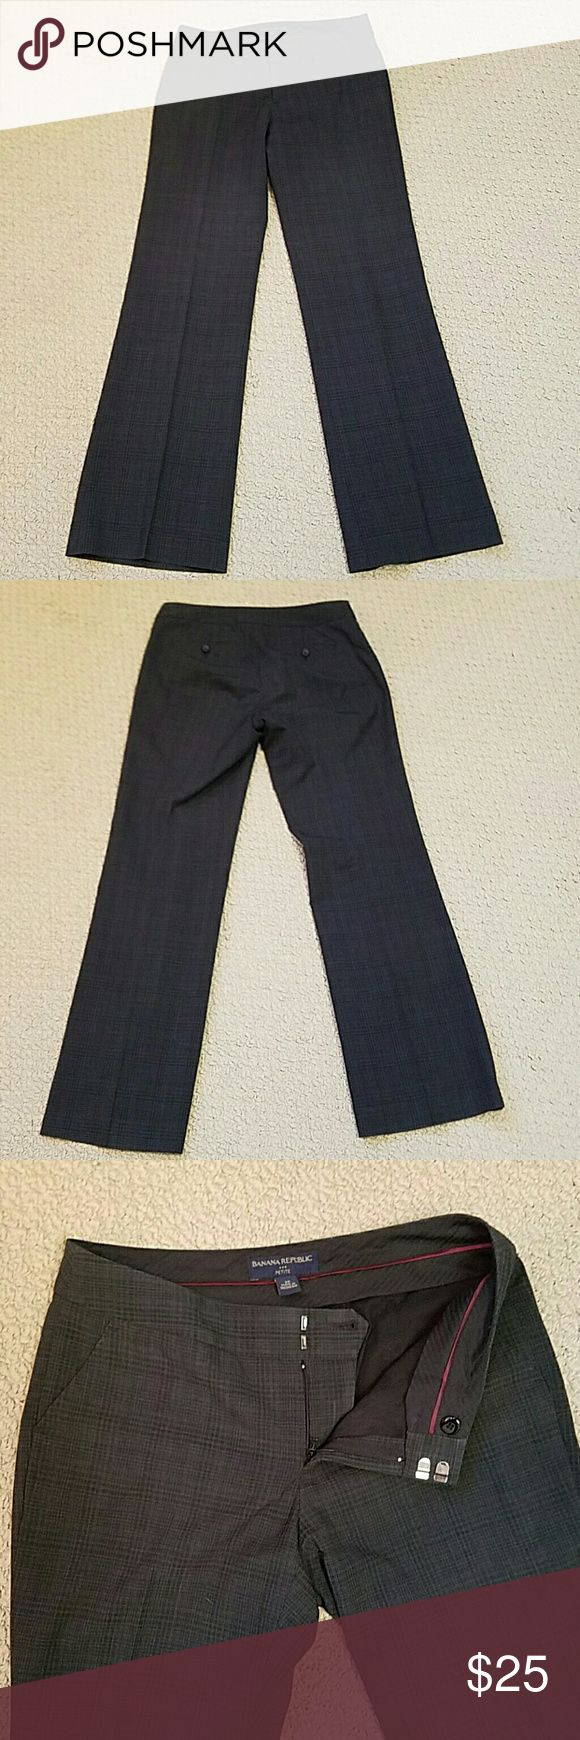 Banana Republic print dress slacks Banana Republic pattern dress slacks, fully lined with front pockets and buttoned back pockets.  Great condition and priced to sell. Banana Republic Pants Straight Leg